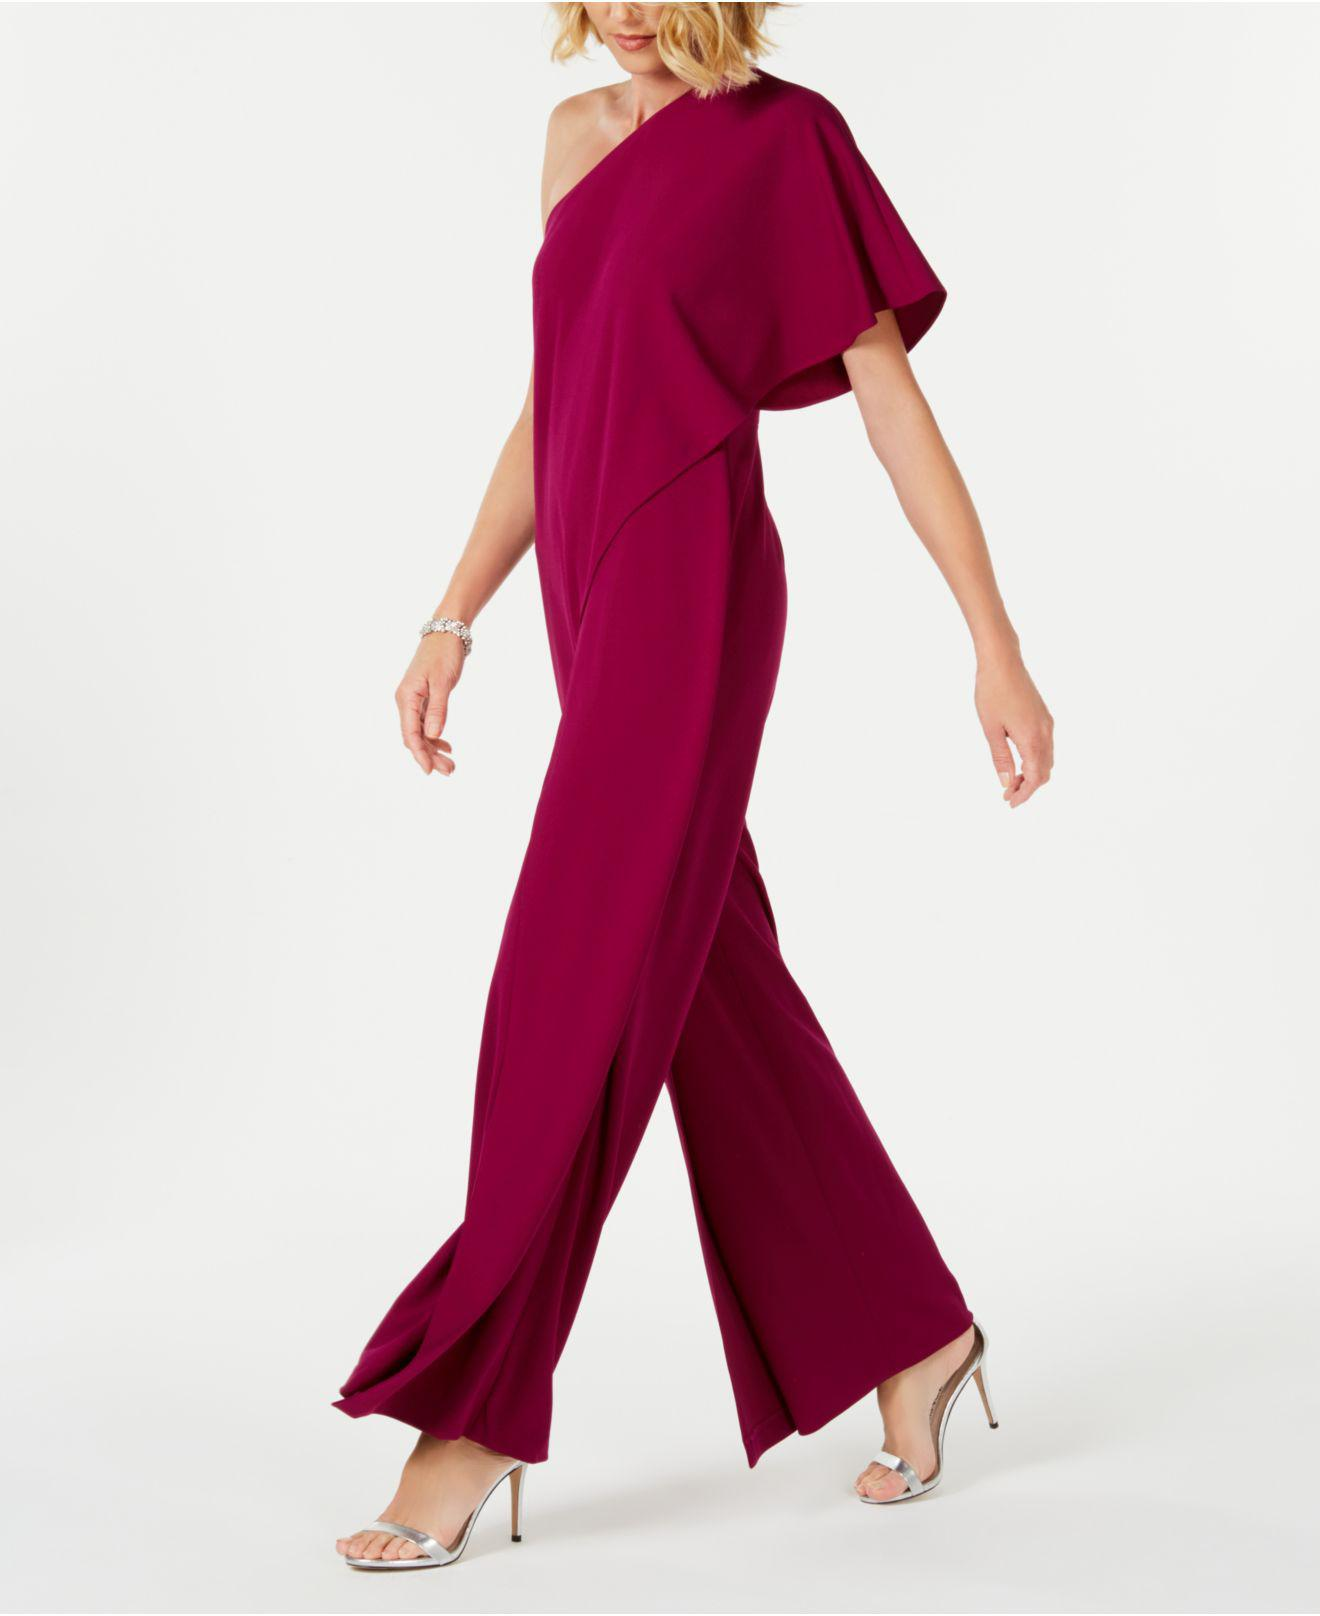 adc990e893a Lyst - Adrianna Papell Petite Draped One-shoulder Jumpsuit in Red